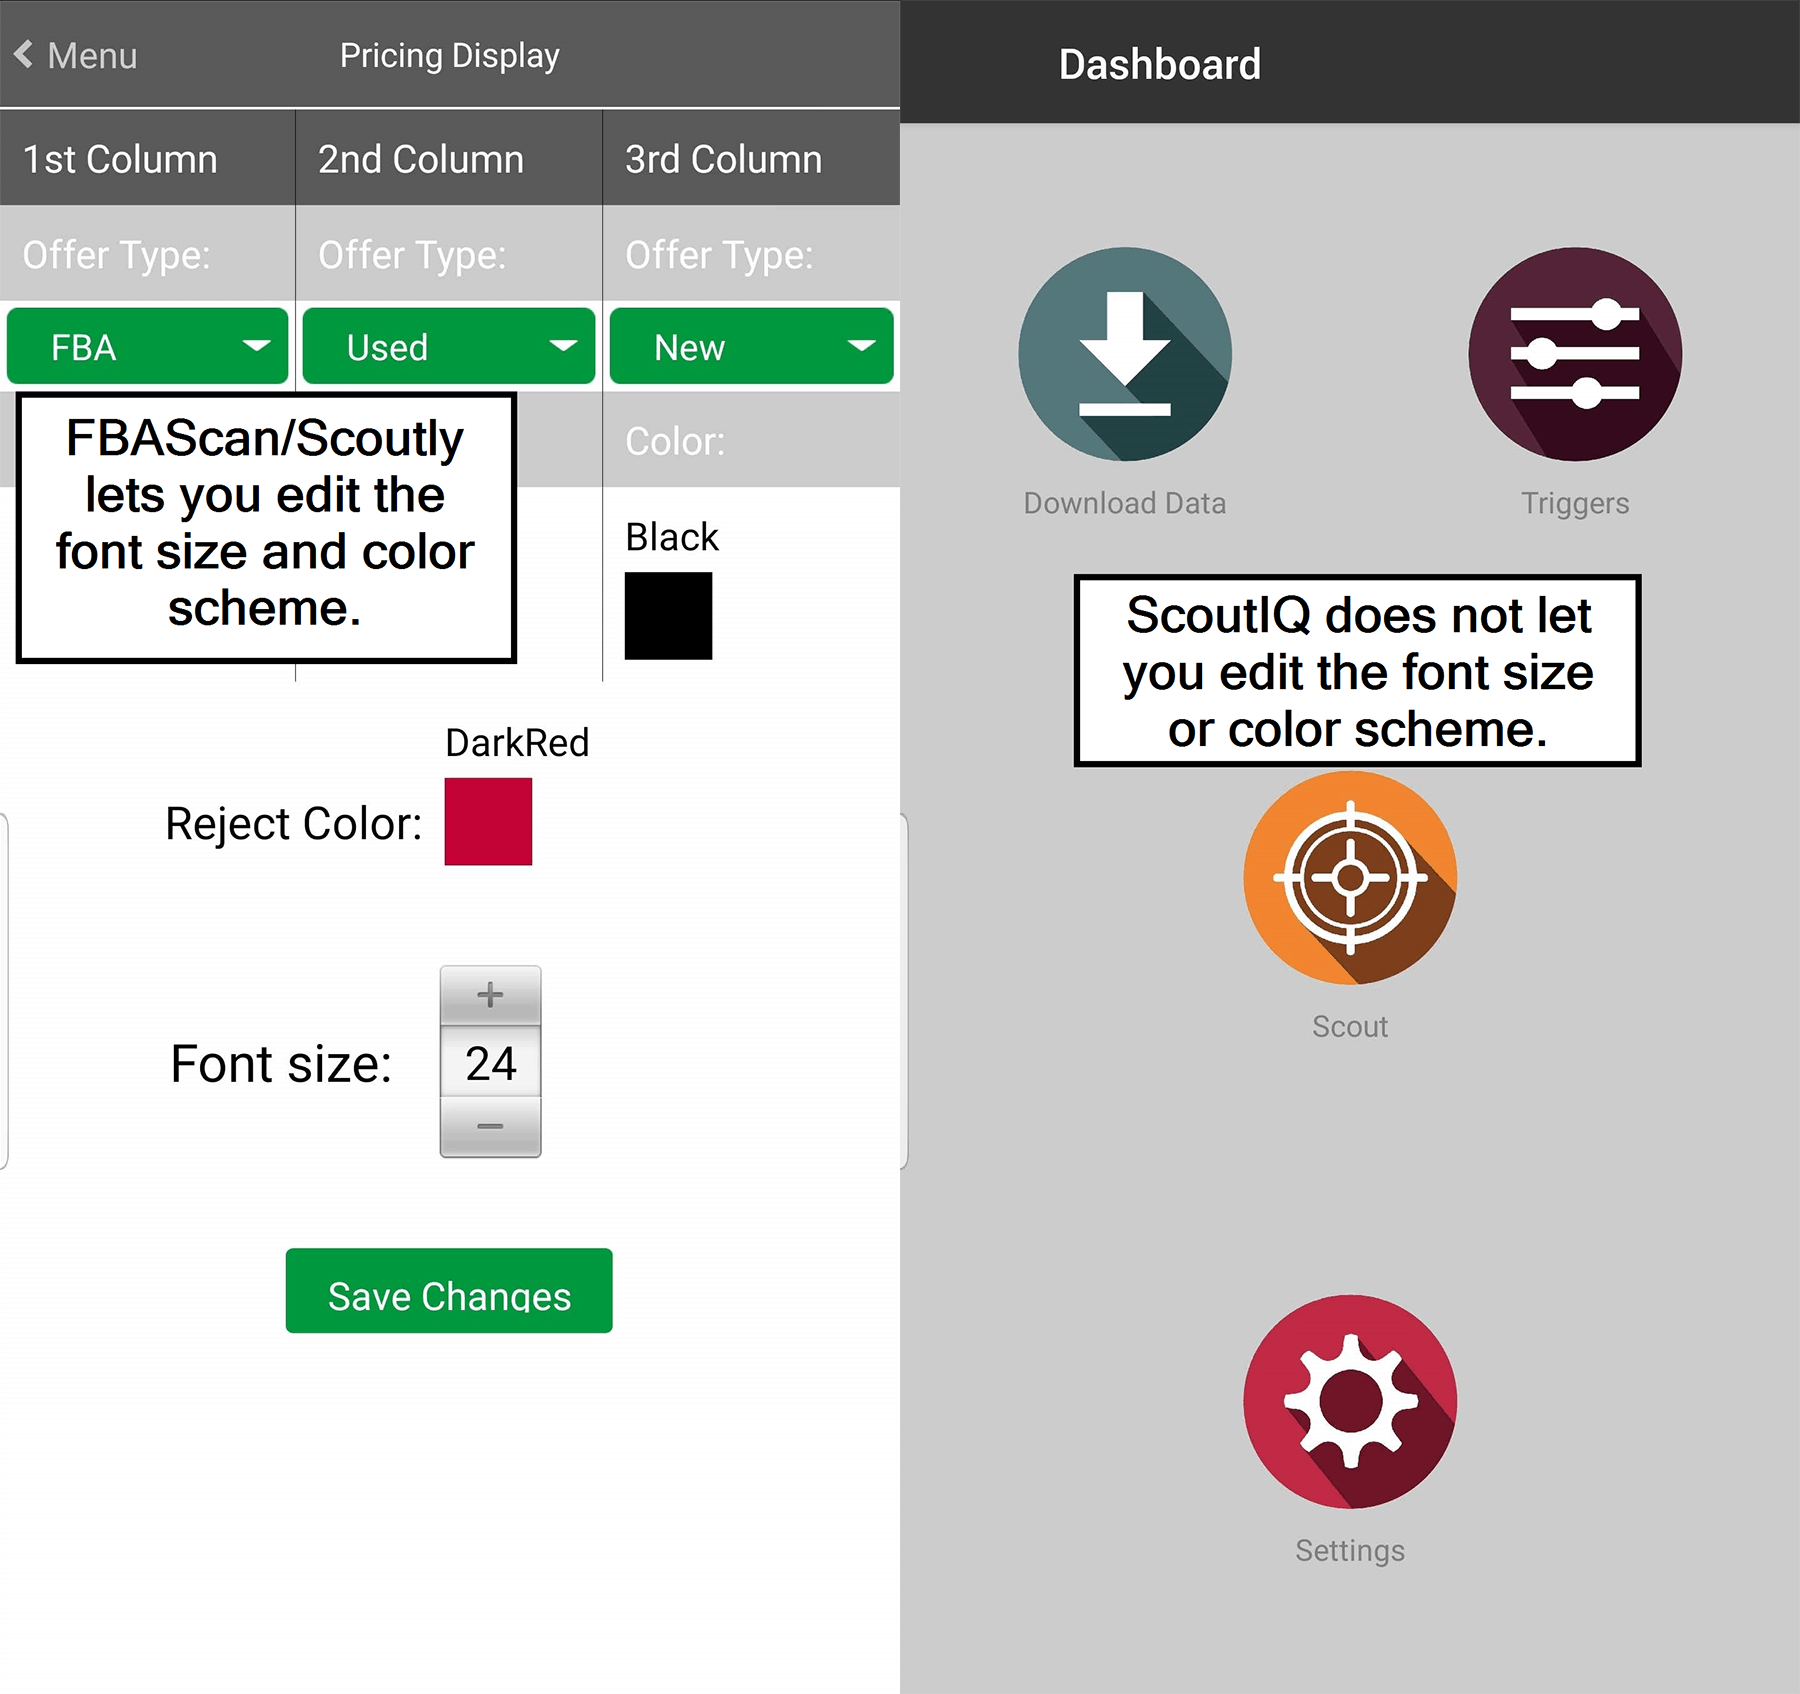 FBAScan/Scoutly lets you edit the color scheme and font size.